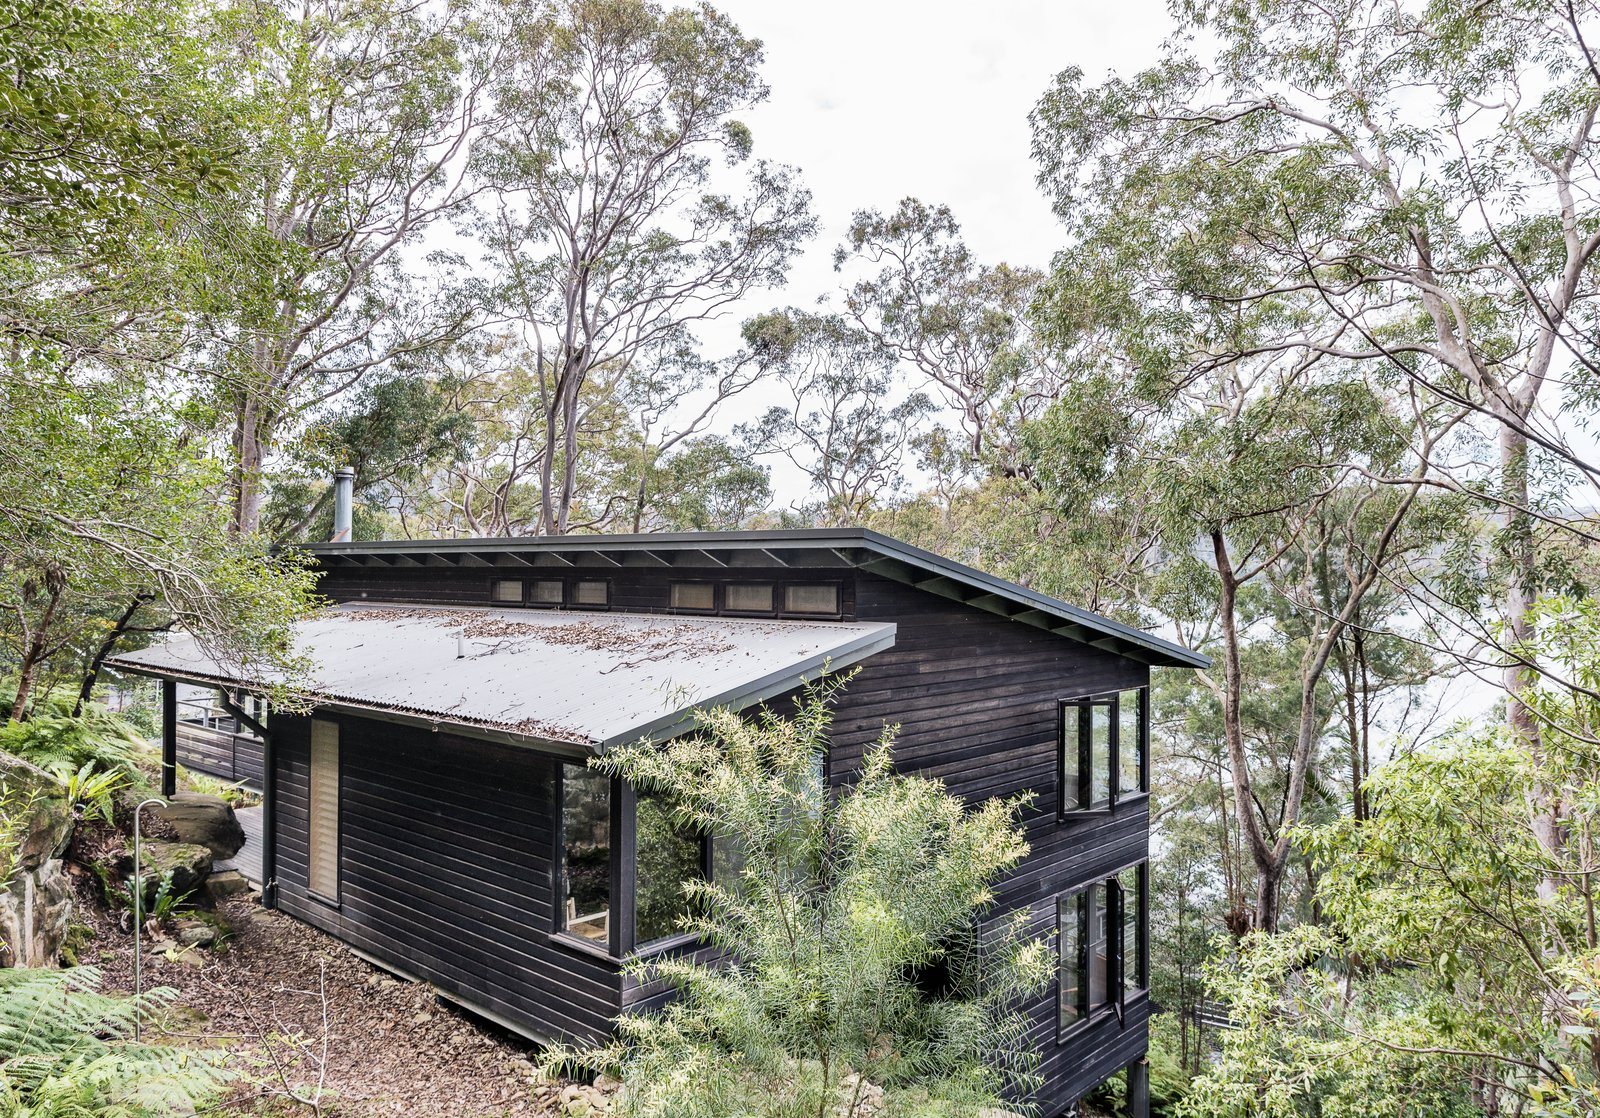 North of Sydney on Dangar Island is a modern Australian vacation rental that's positioned to take full advantage of views of the Hawkesbury River and gorgeous native Angophora trees.